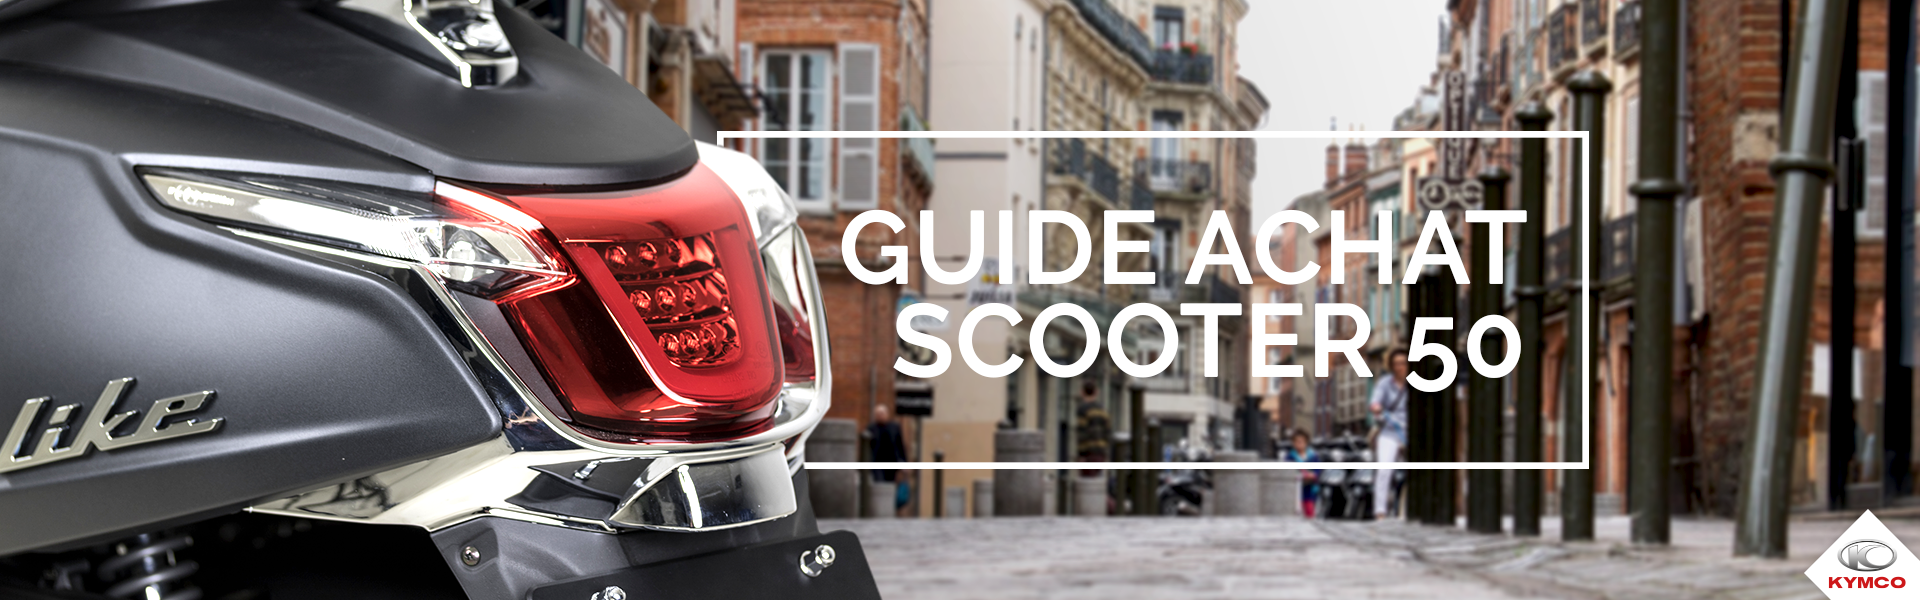 Guide_achat_scooters50